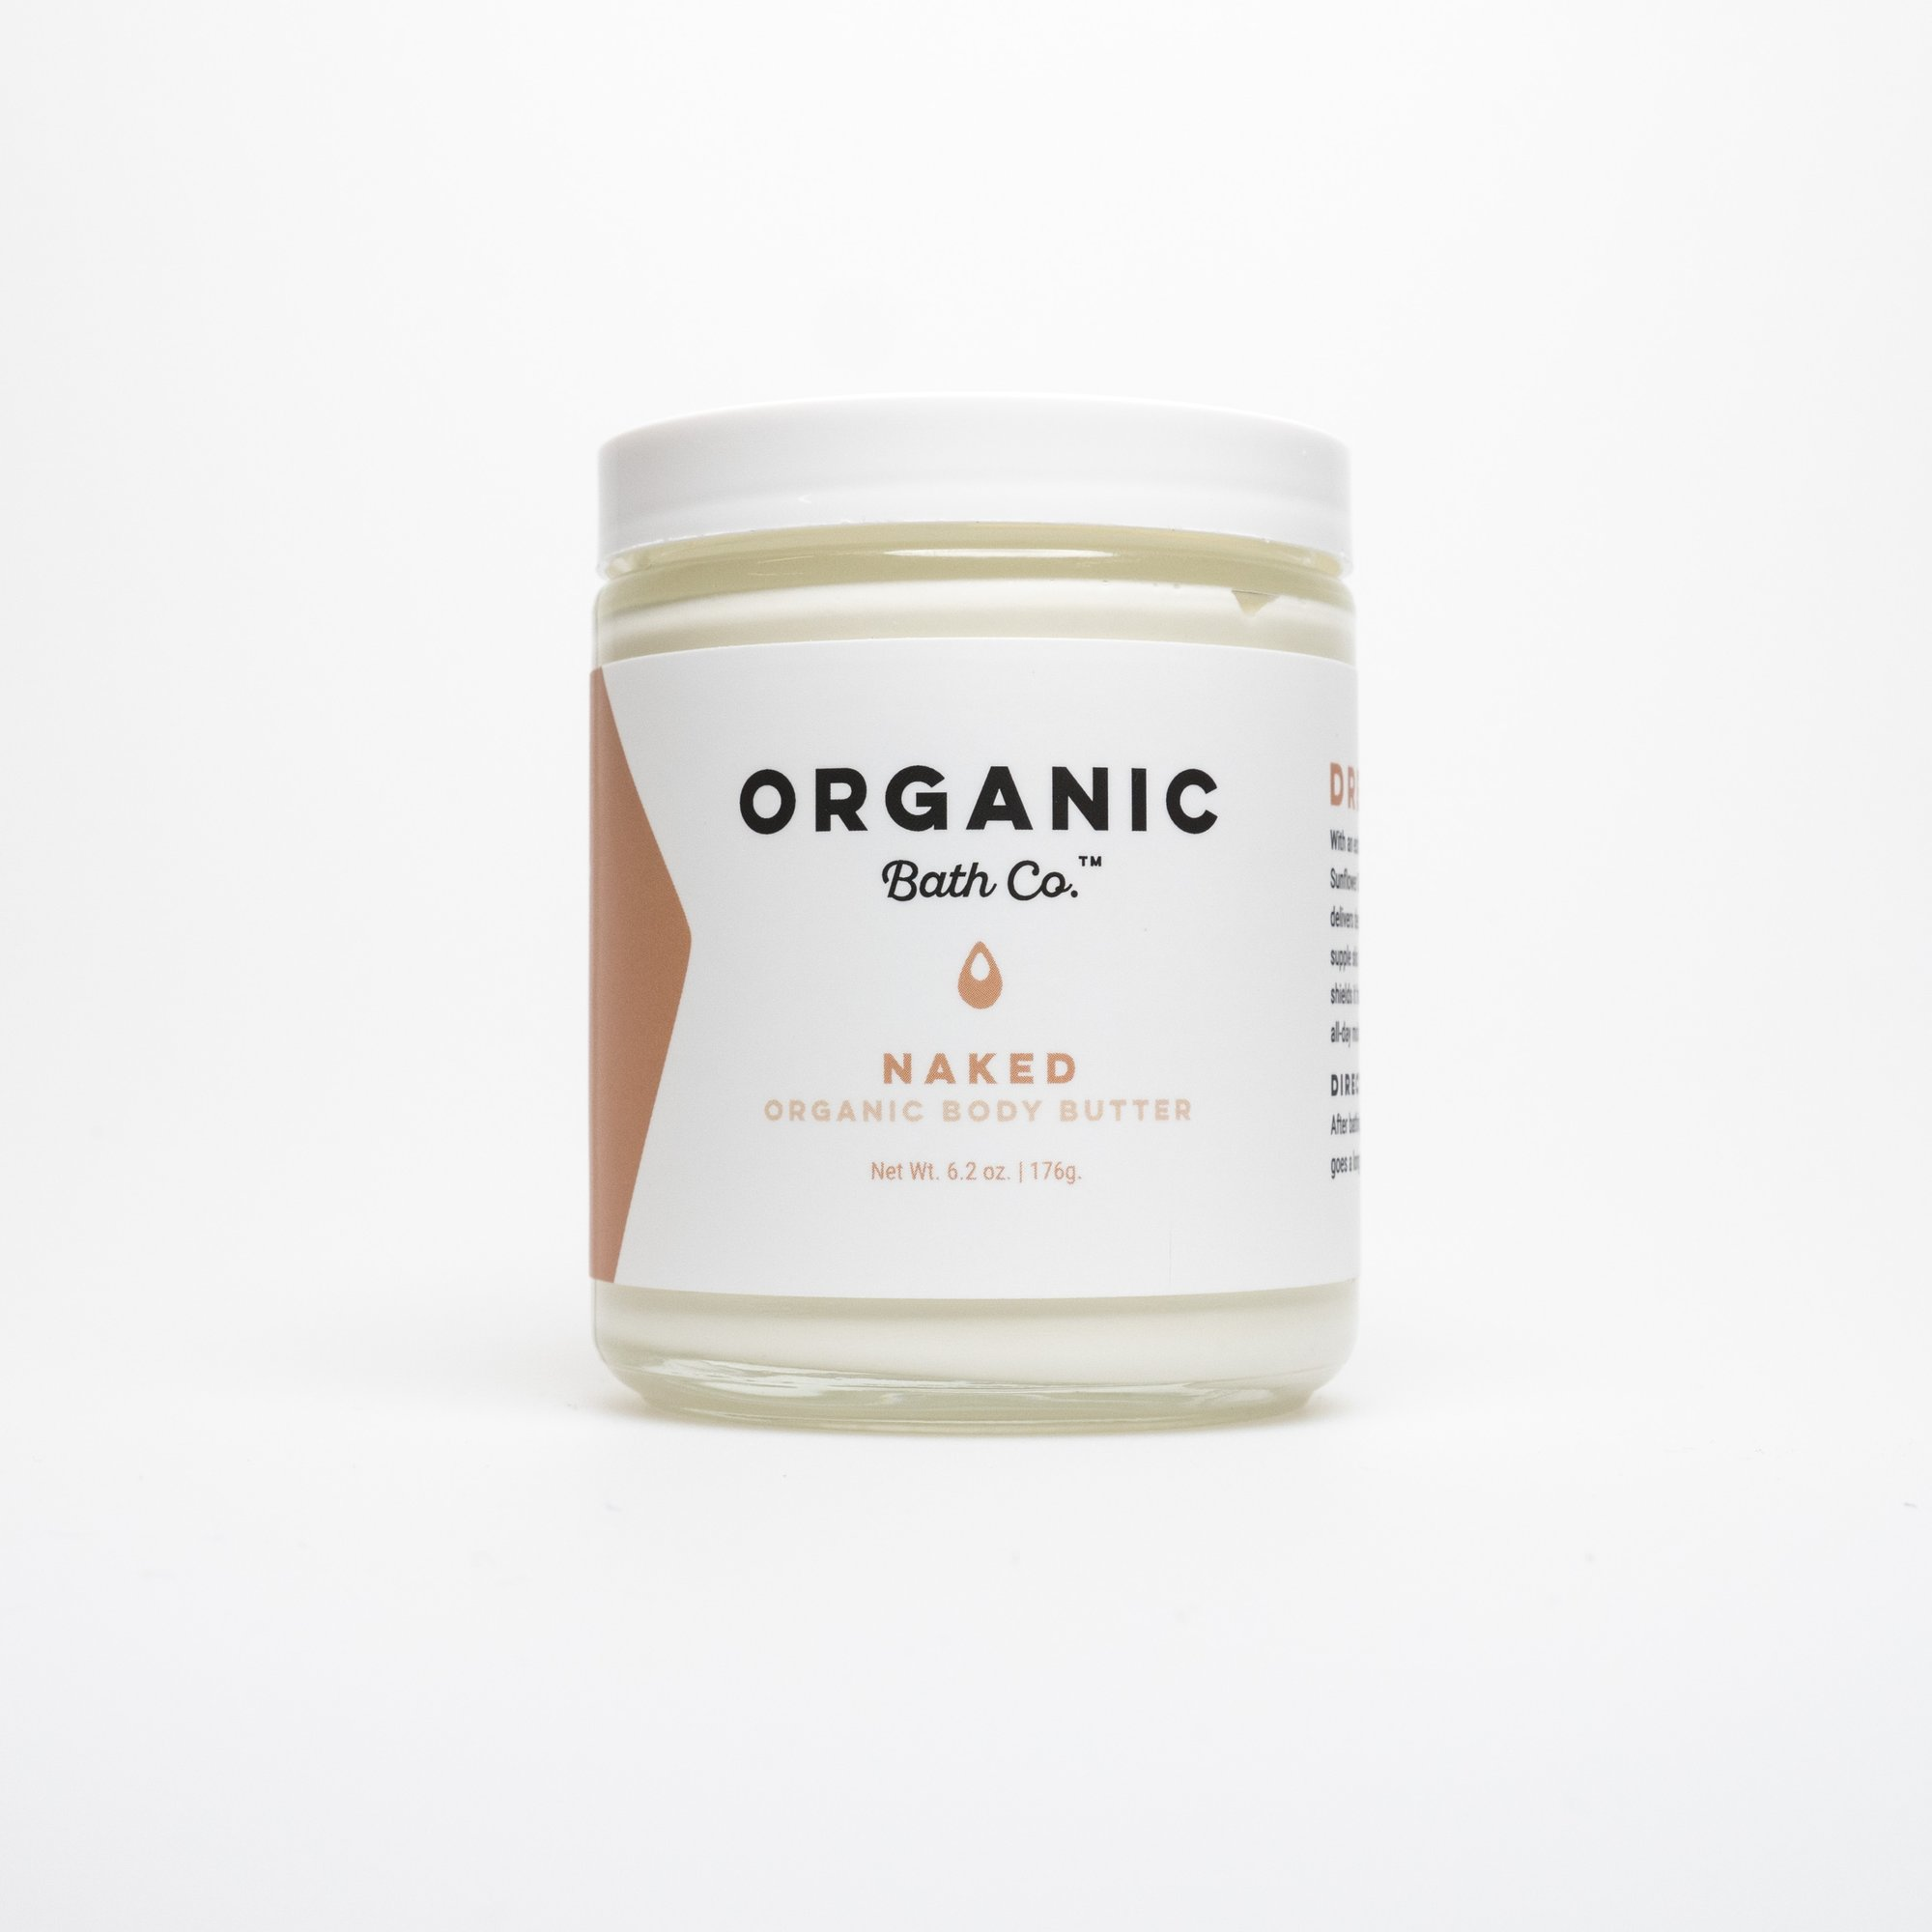 Drenched Organic Body Butter with Argan & Jojoba